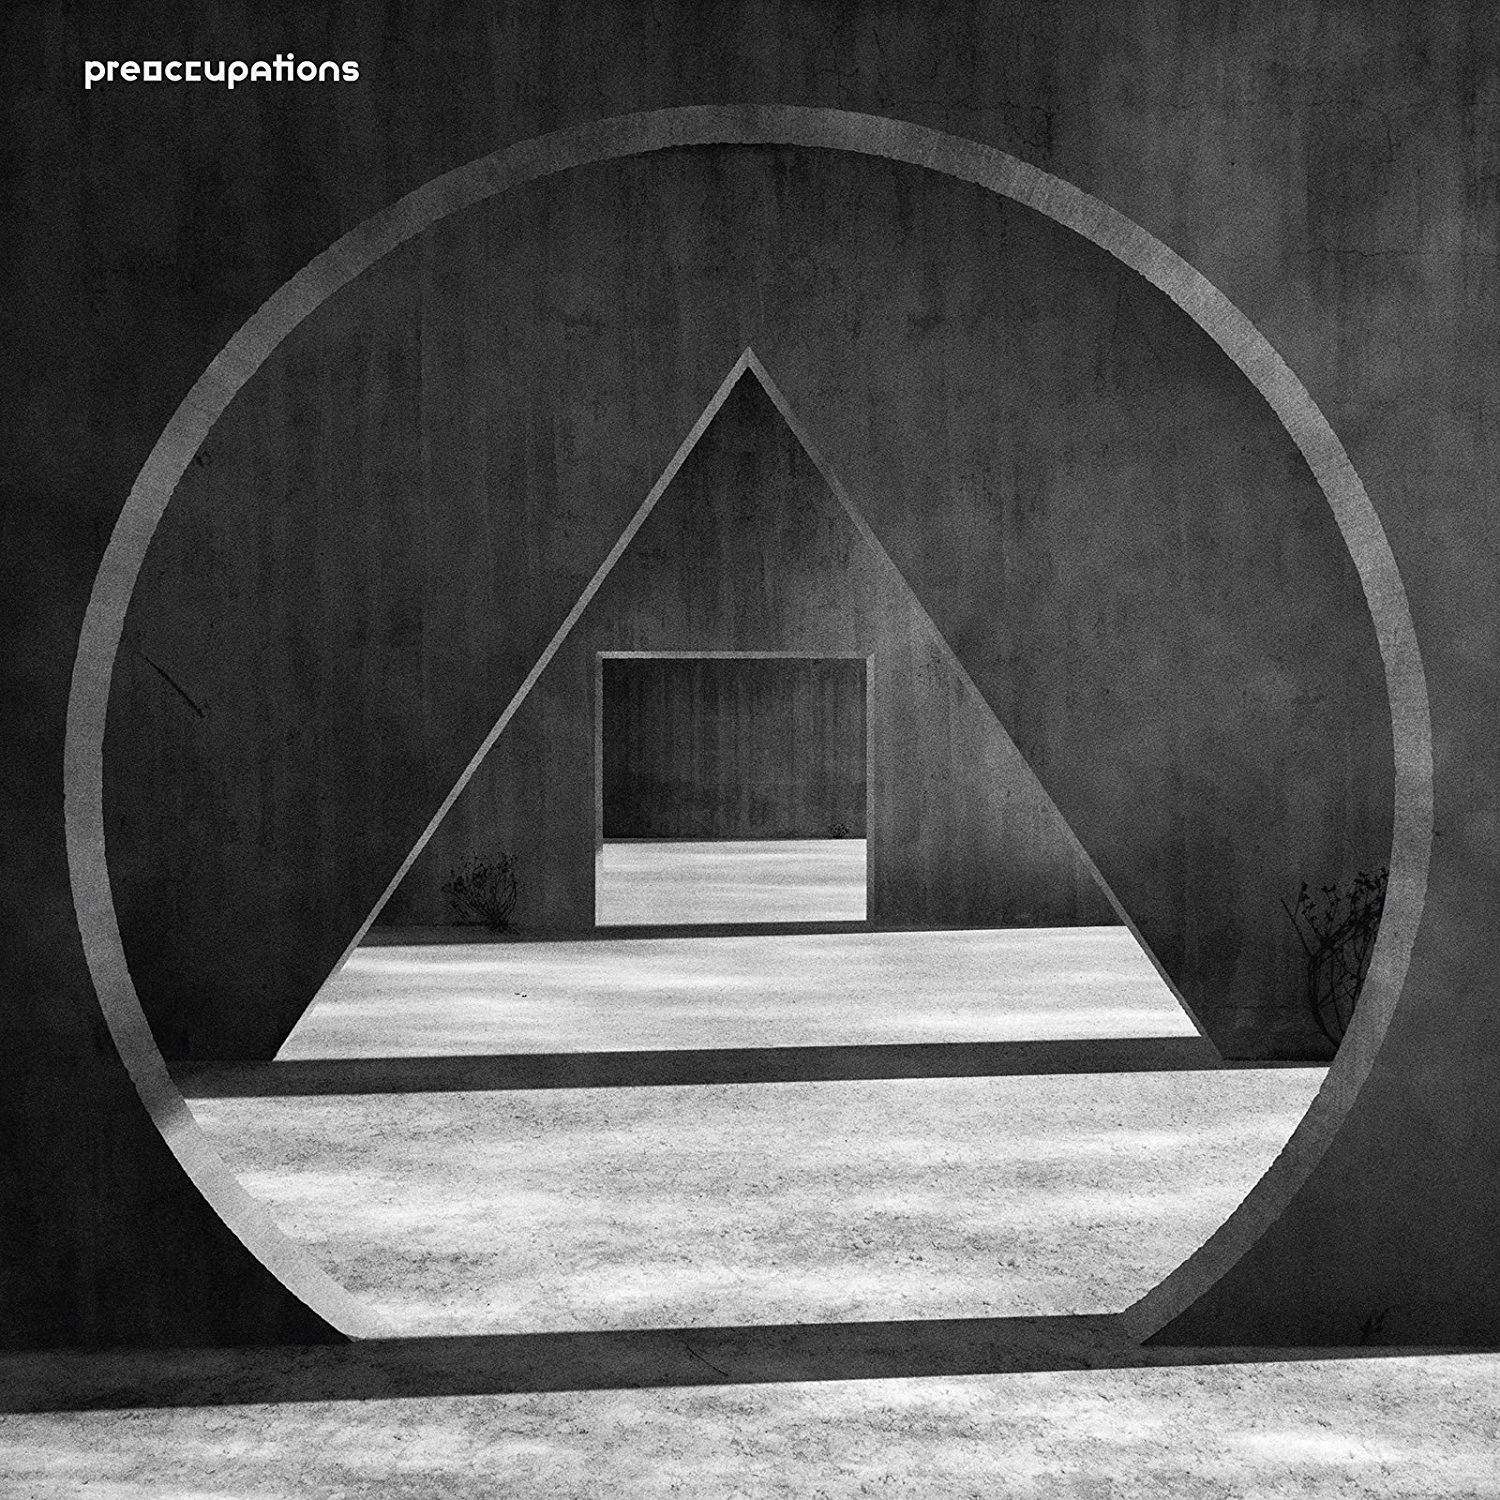 Preoccupations - New Material [Colored Vinyl] (Can)